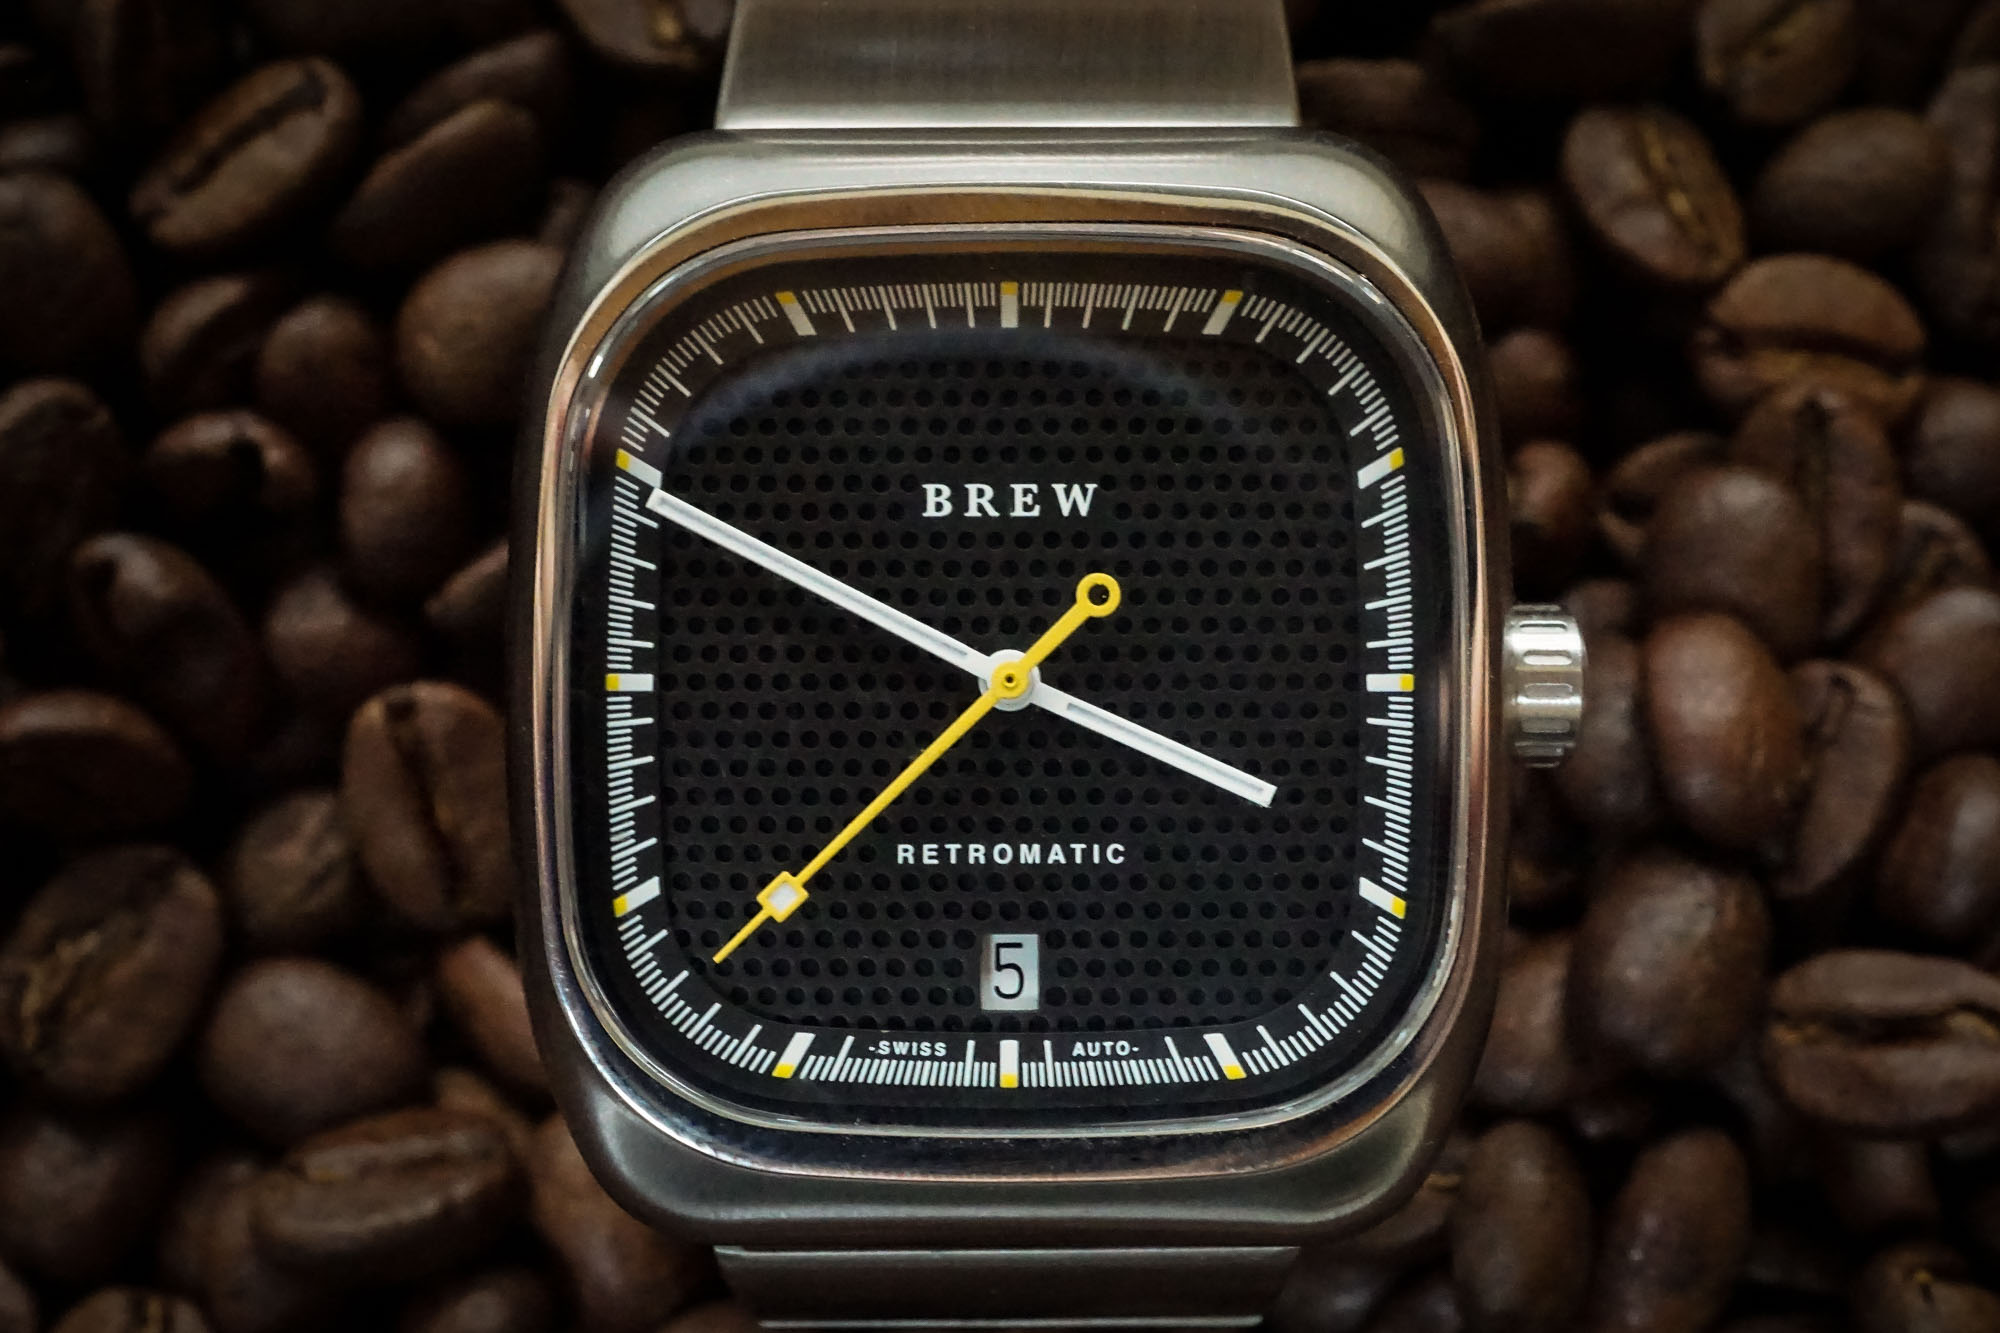 Hands-On Review – Brew Retromatic